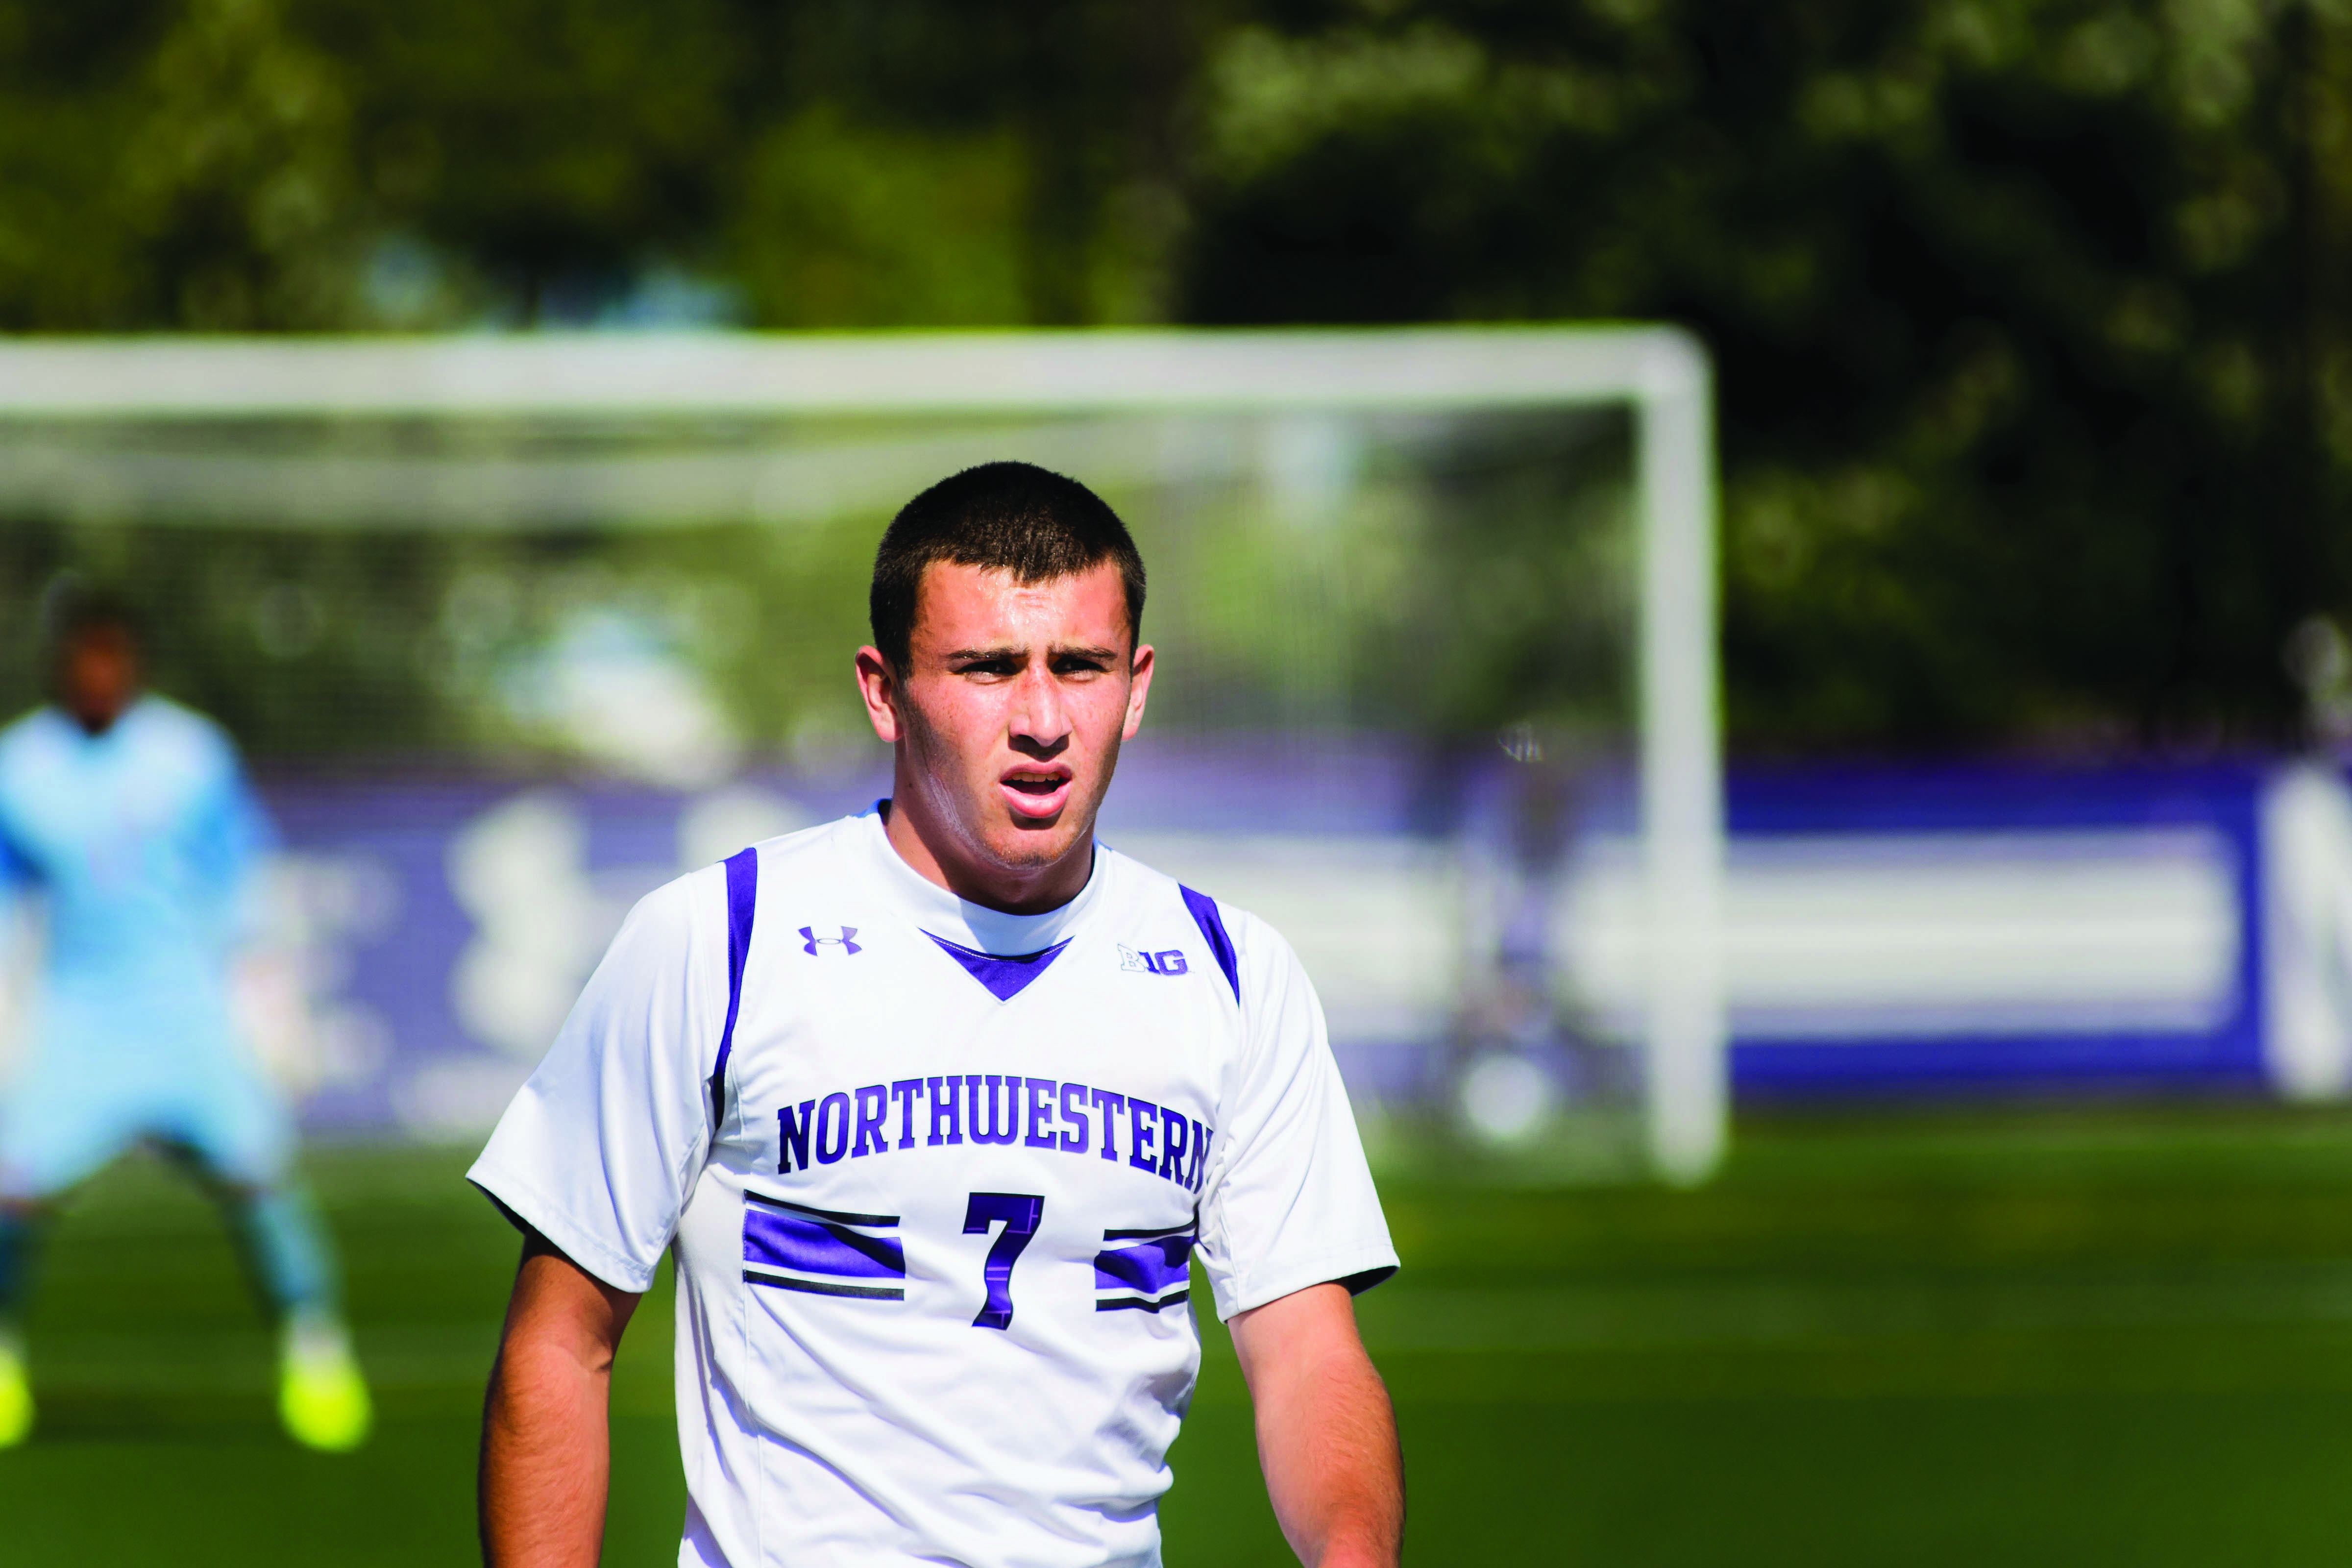 Sam Forsgren stays ready for action in Northwestern's most recent home game against Maryland. The freshman forward tallied a goal against Northern Illinois, the first of his career.